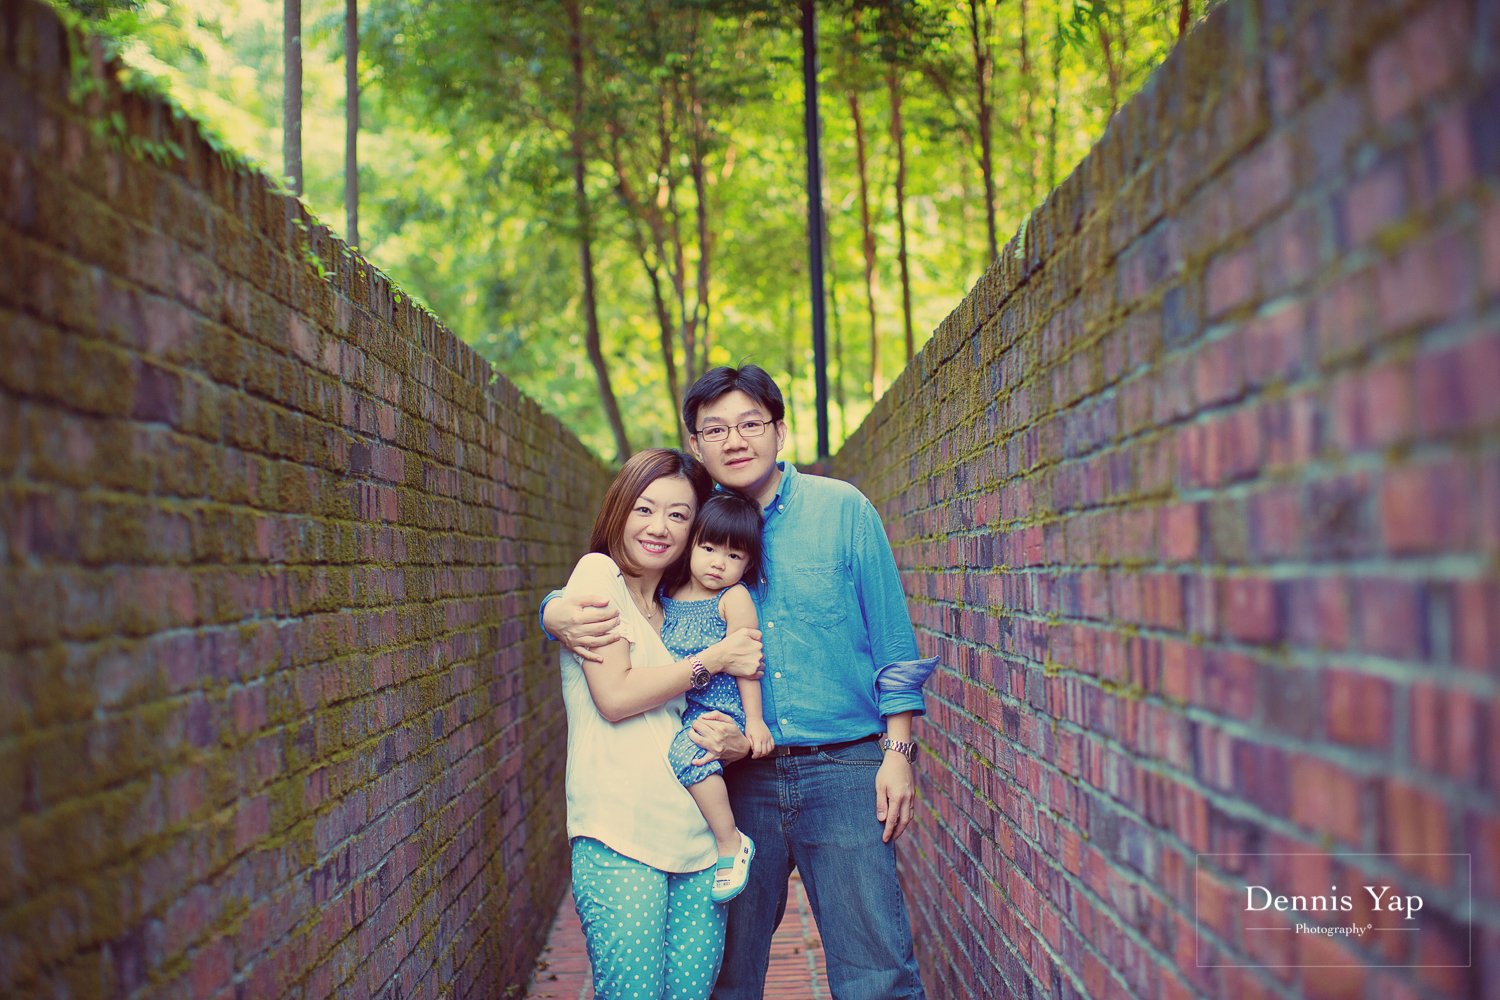 joanne family portrait at PJ trade centre by dennis yap photography beloved-3.jpg